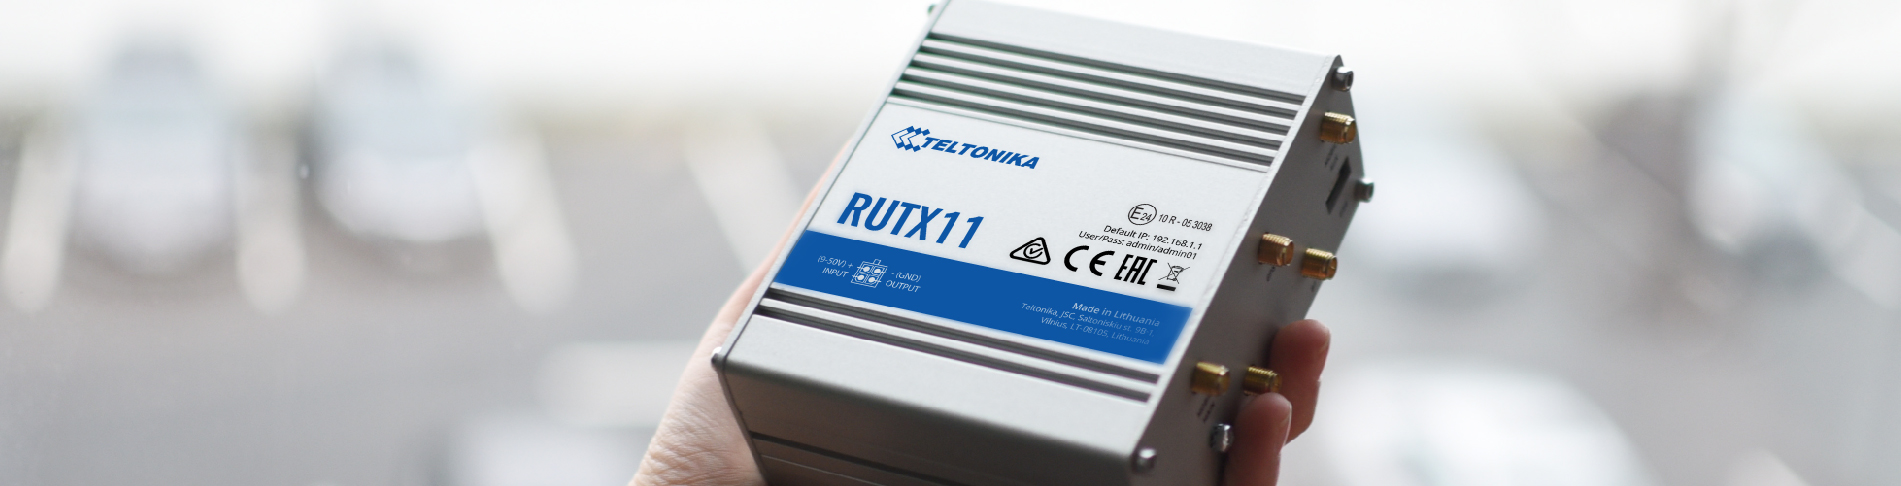 RUTX11 Acquired Verizon Certification